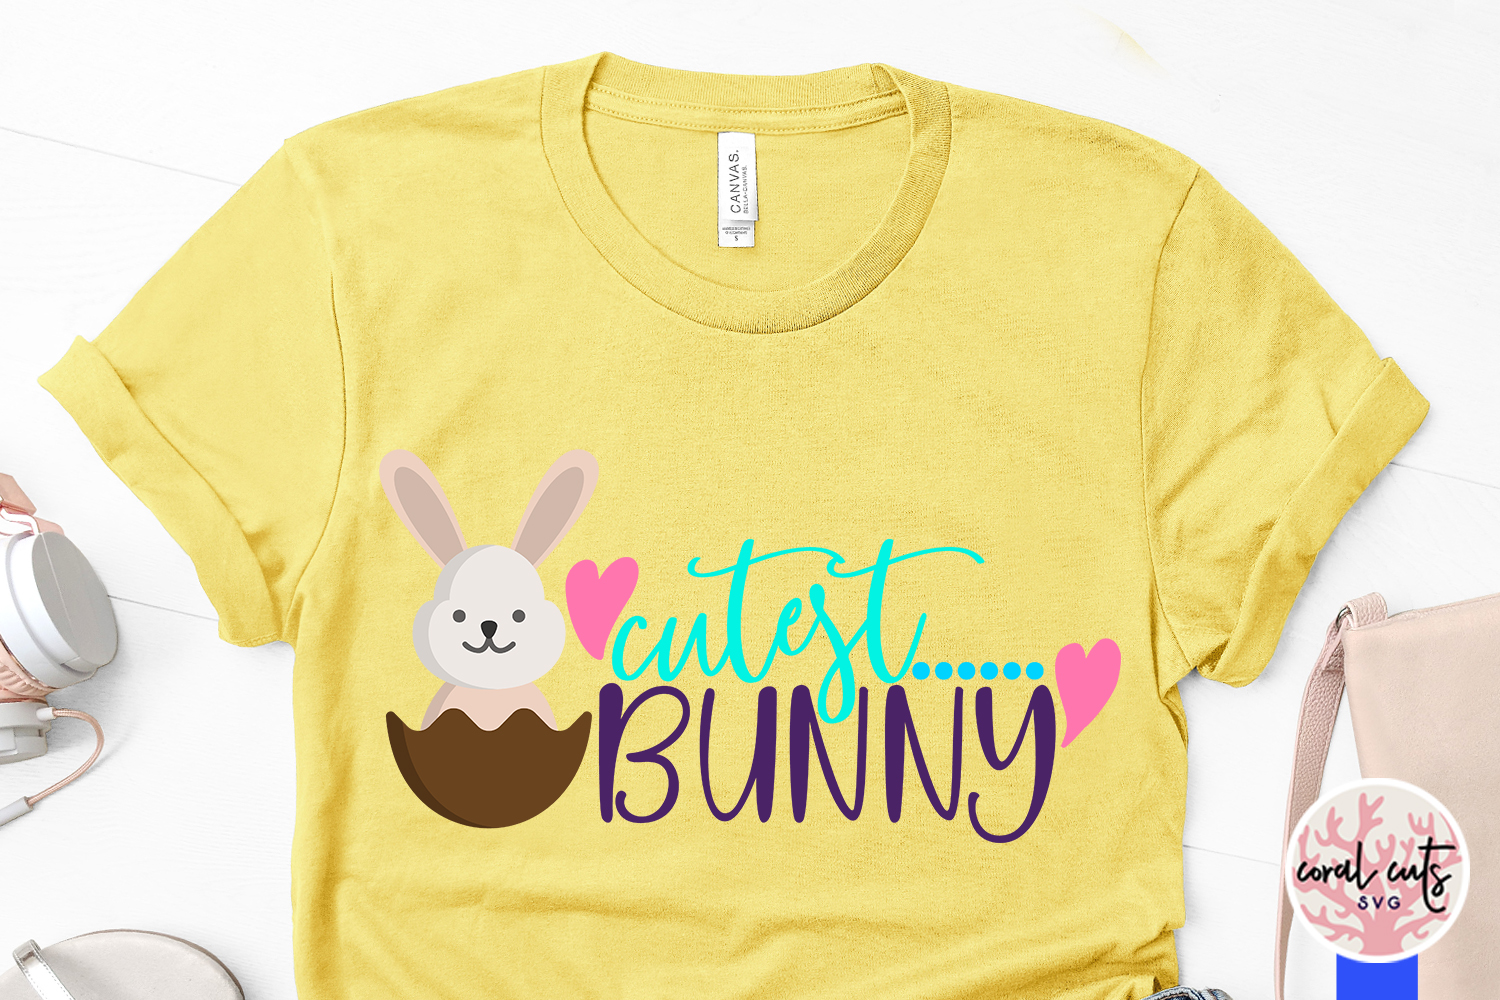 Cutest bunny - Easter SVG EPS DXF PNG Cutting File example image 3